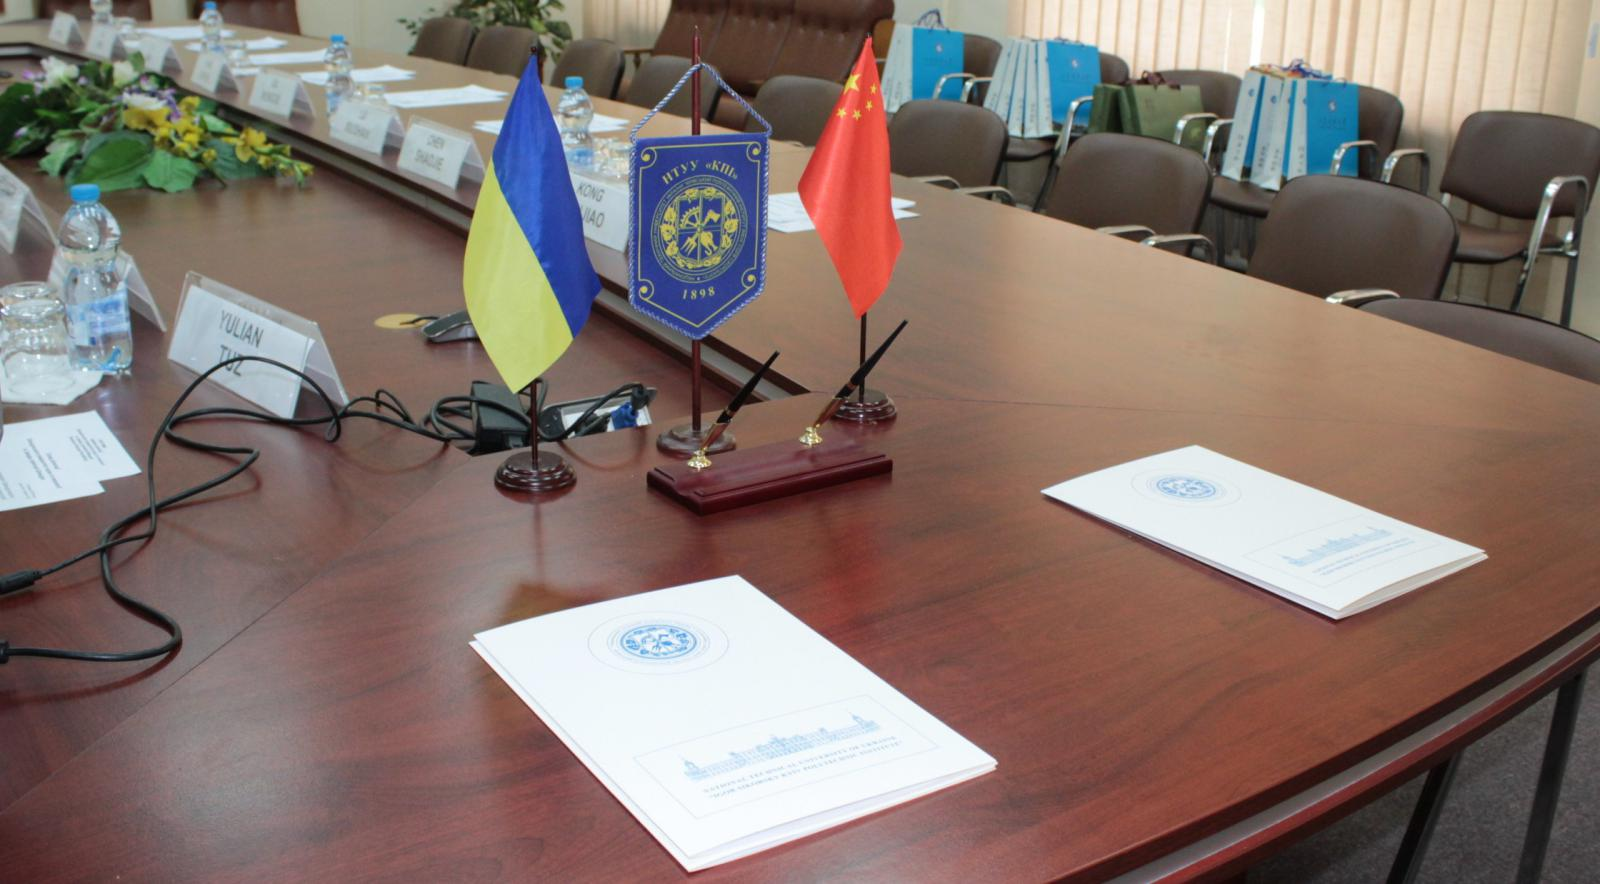 2019.05.22 delegations of two institutions of the higher education from People's Republic of China